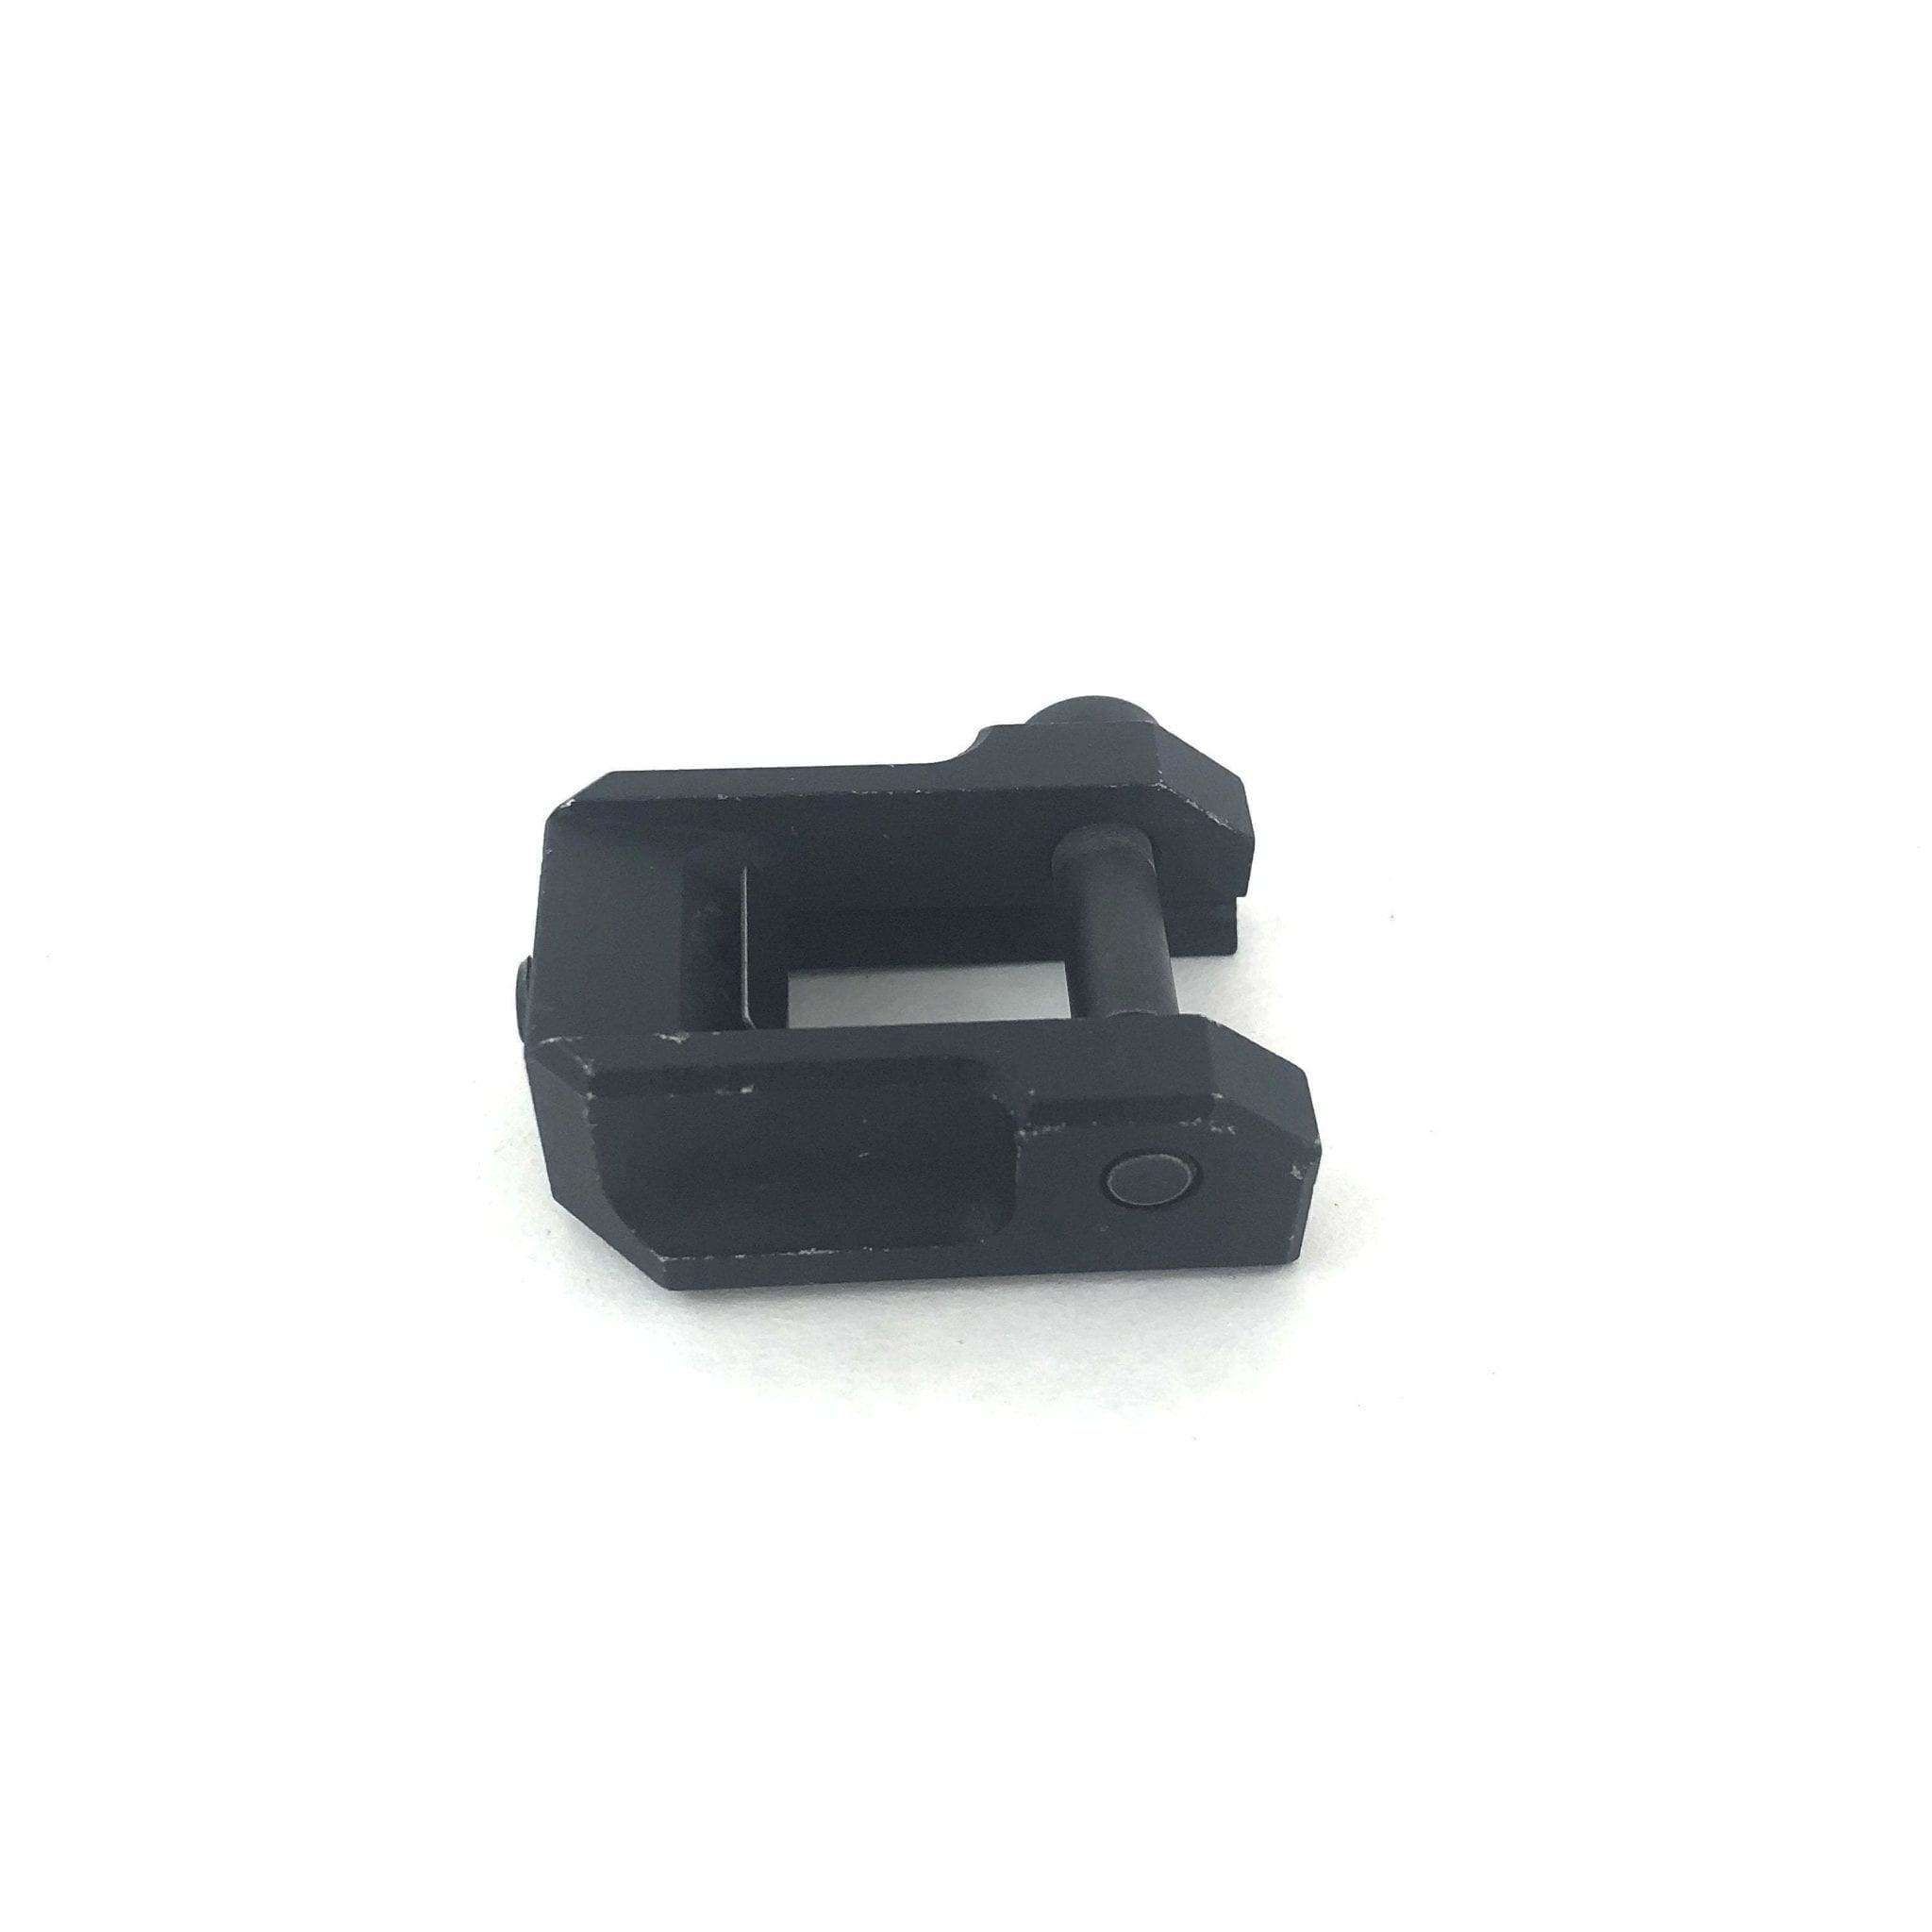 C Clamp For Aimpoint Gooseneck Picatinny Carry Handle EOTech Rifle Sight Mount